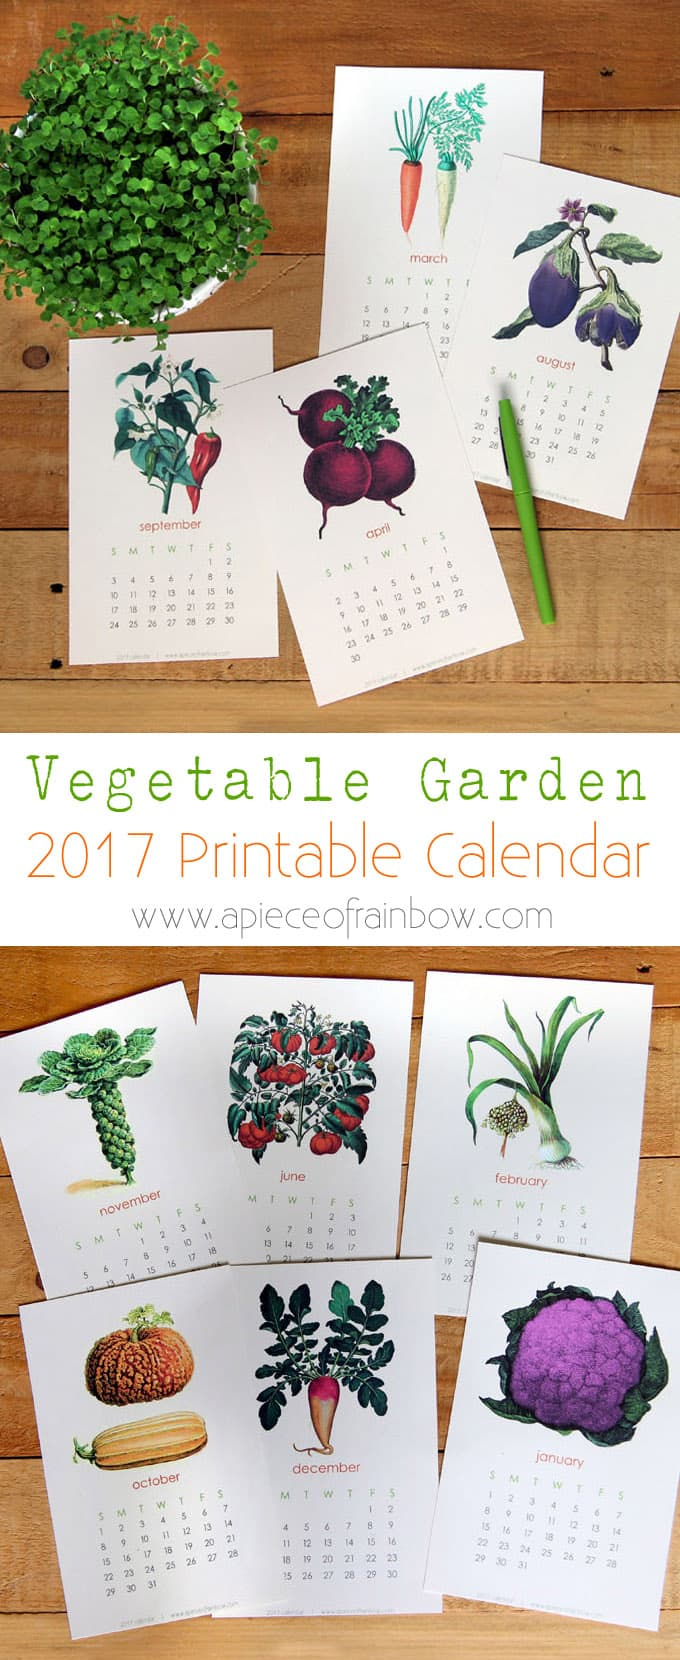 Free 2017 Vegetable Garden Calendar A Piece Of Rainbow